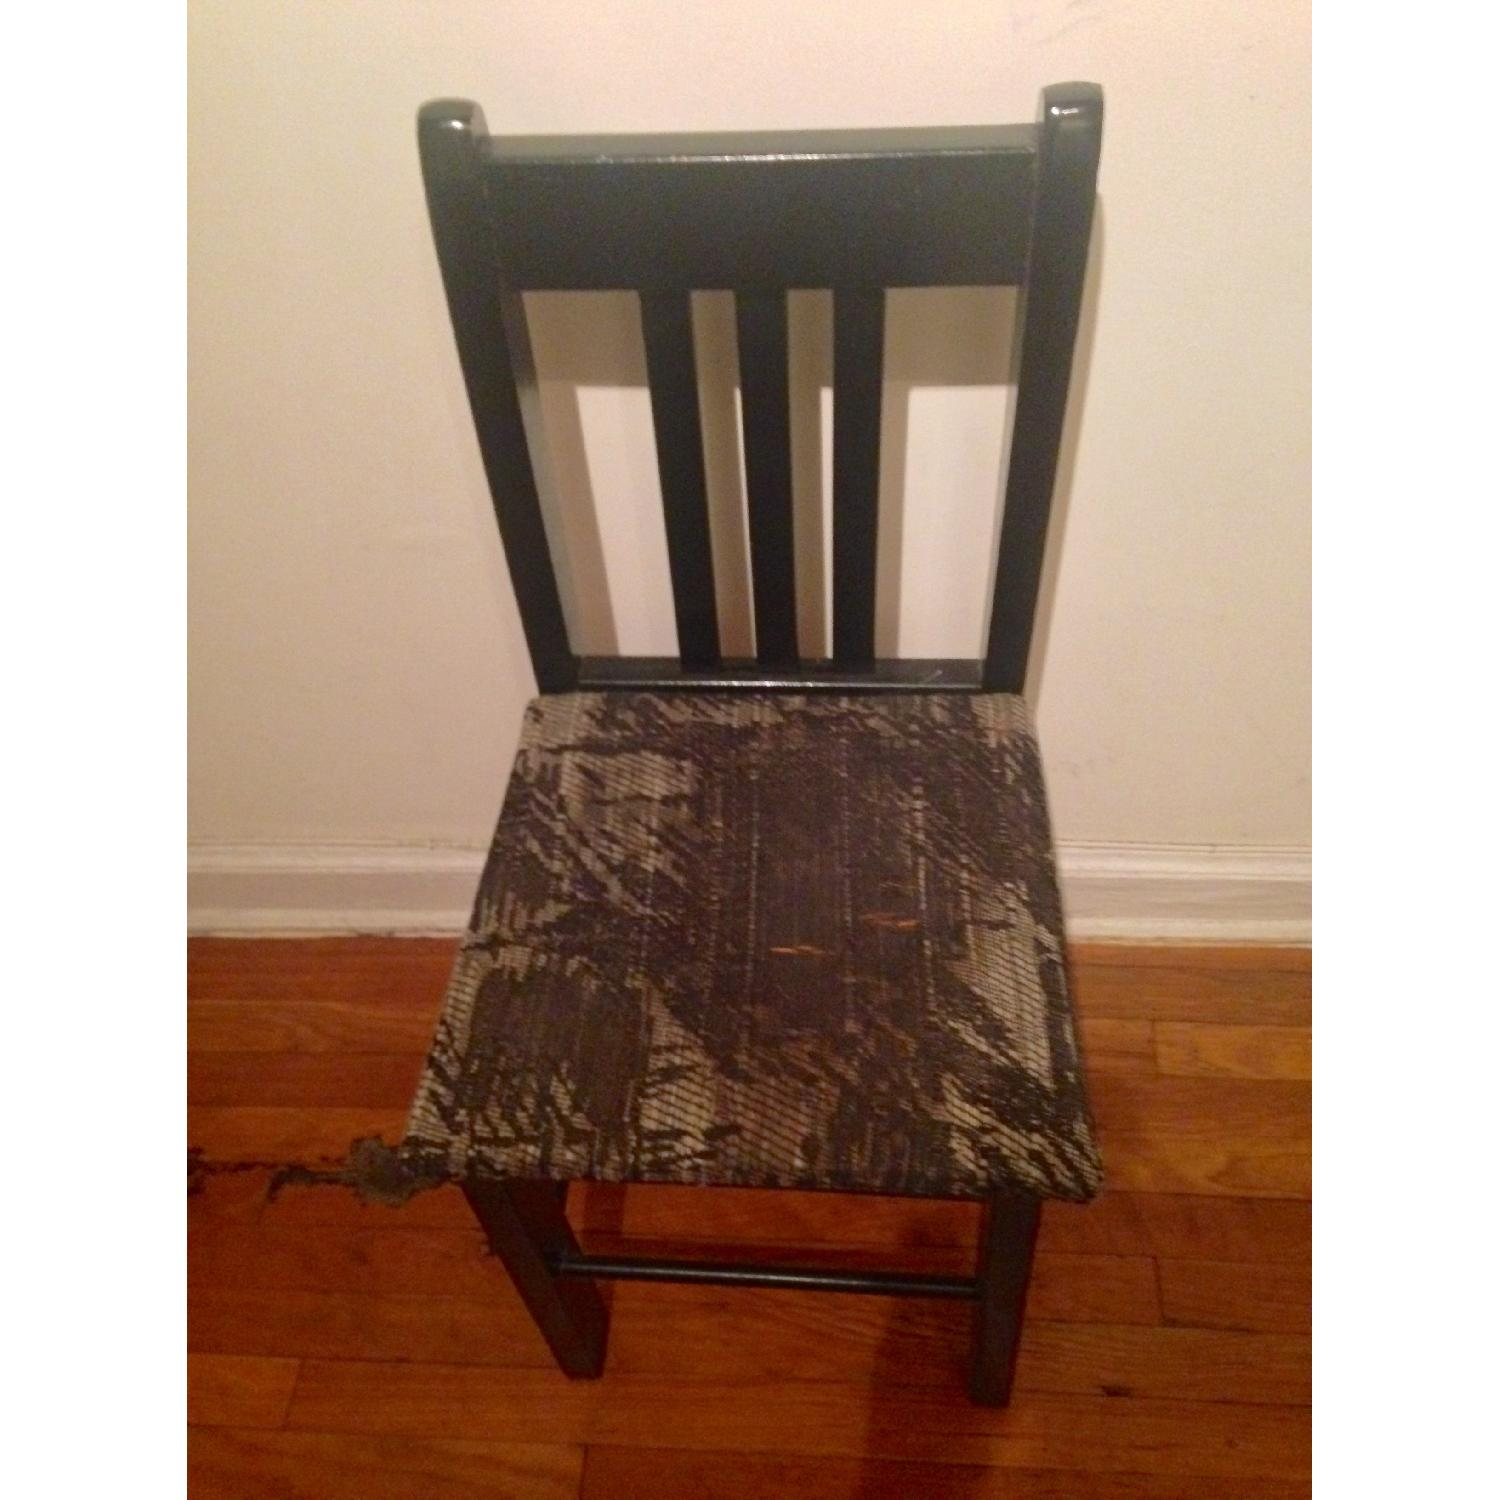 Retro Black Accent/Dining Chair w/ Knitted Fabric Seat - image-4